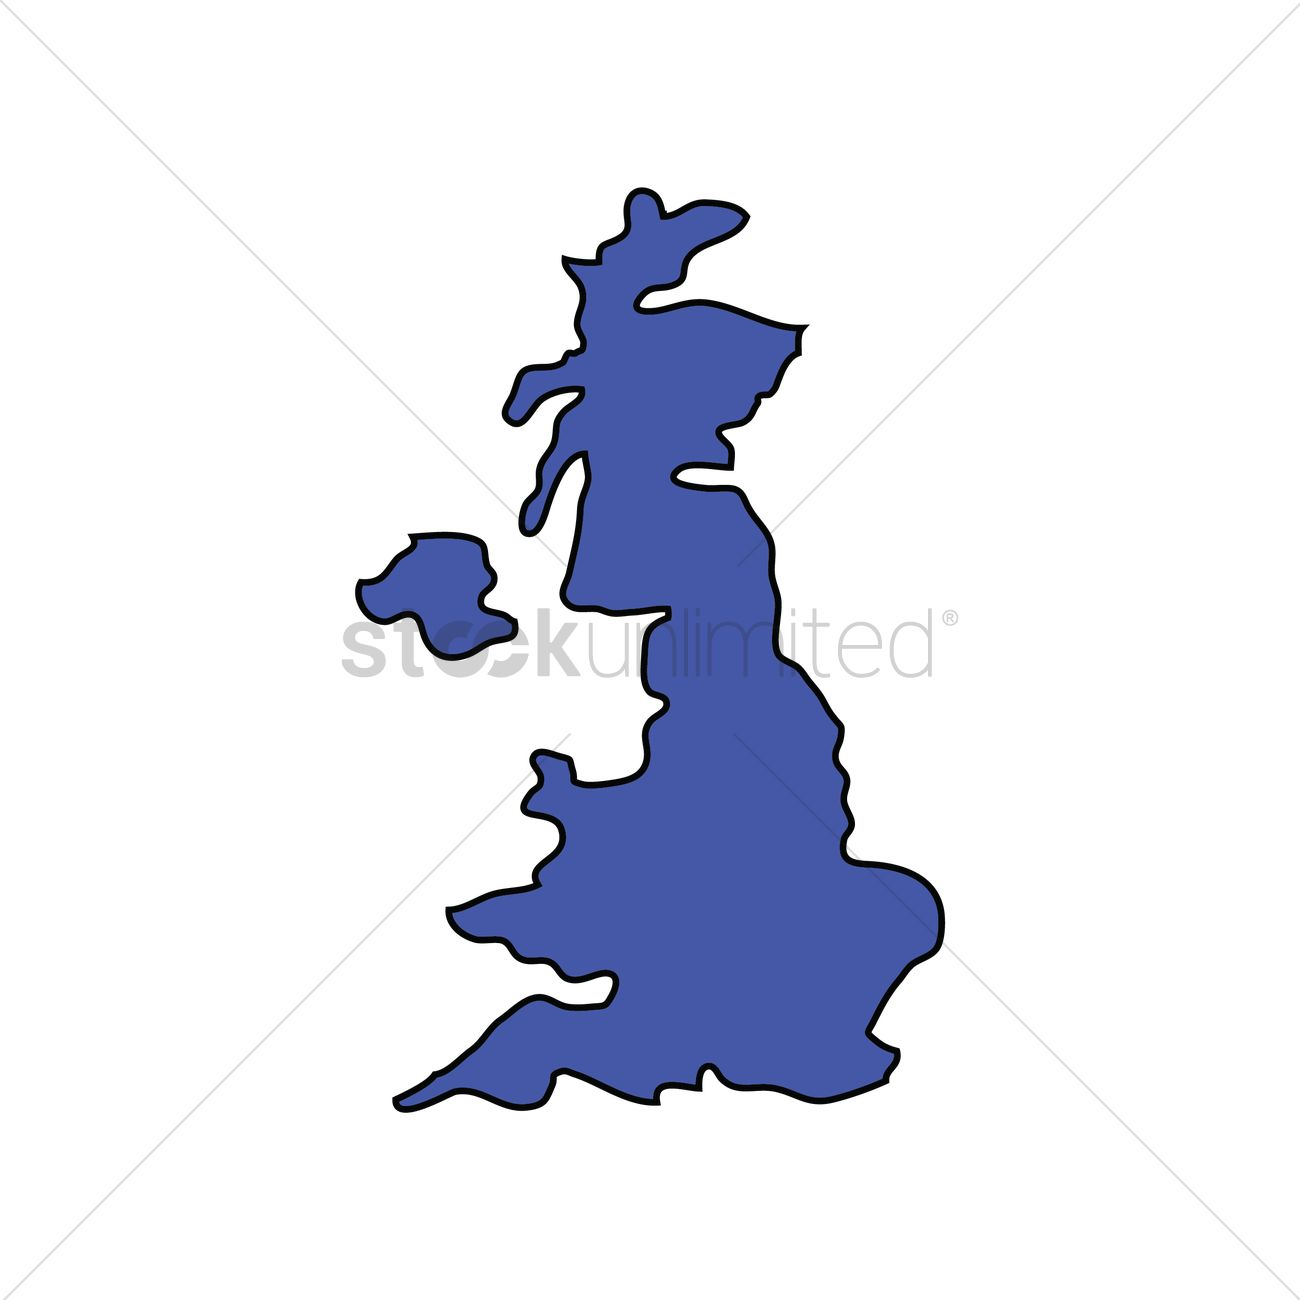 United Kingdom Of Great Britain And Northern Ireland Map Vector - United kingdom map vector